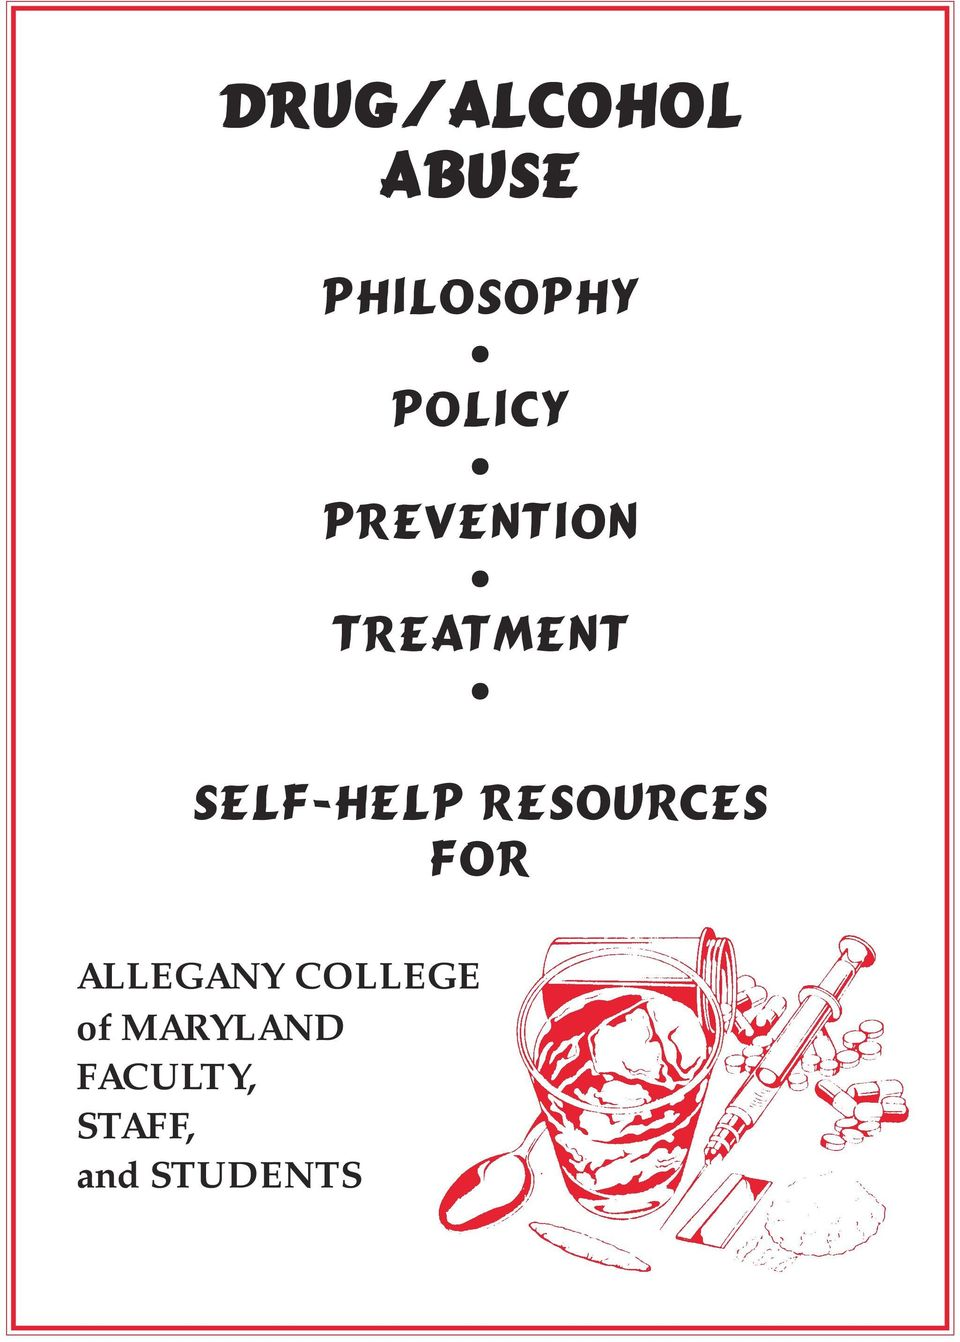 Self-Help Resources for ALLEGANY